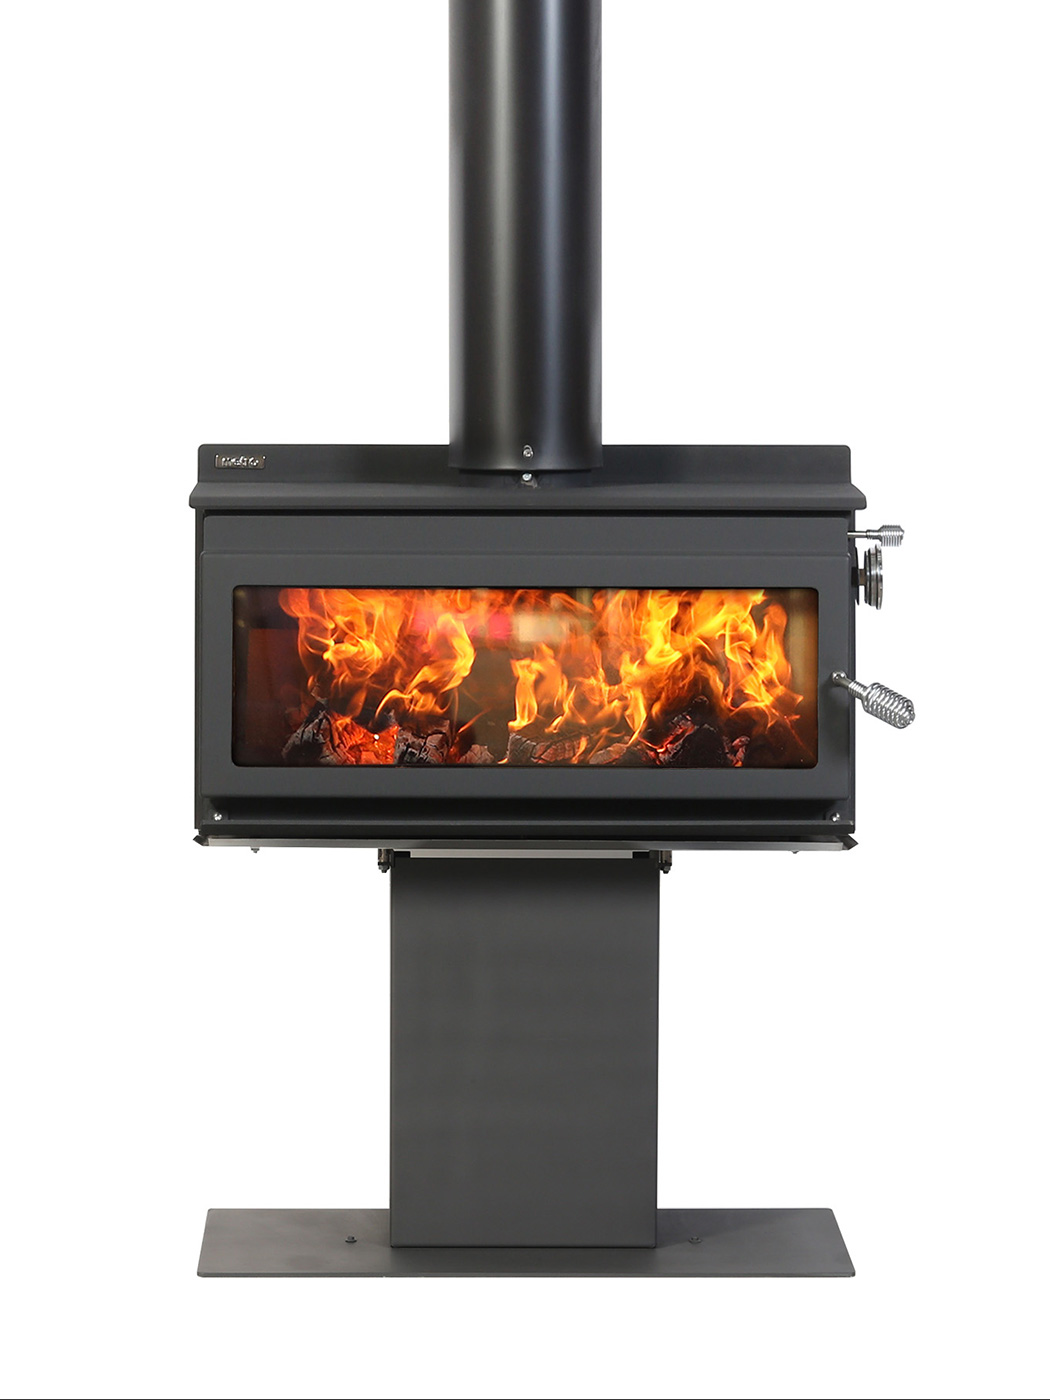 Outdoor 850p Firebox